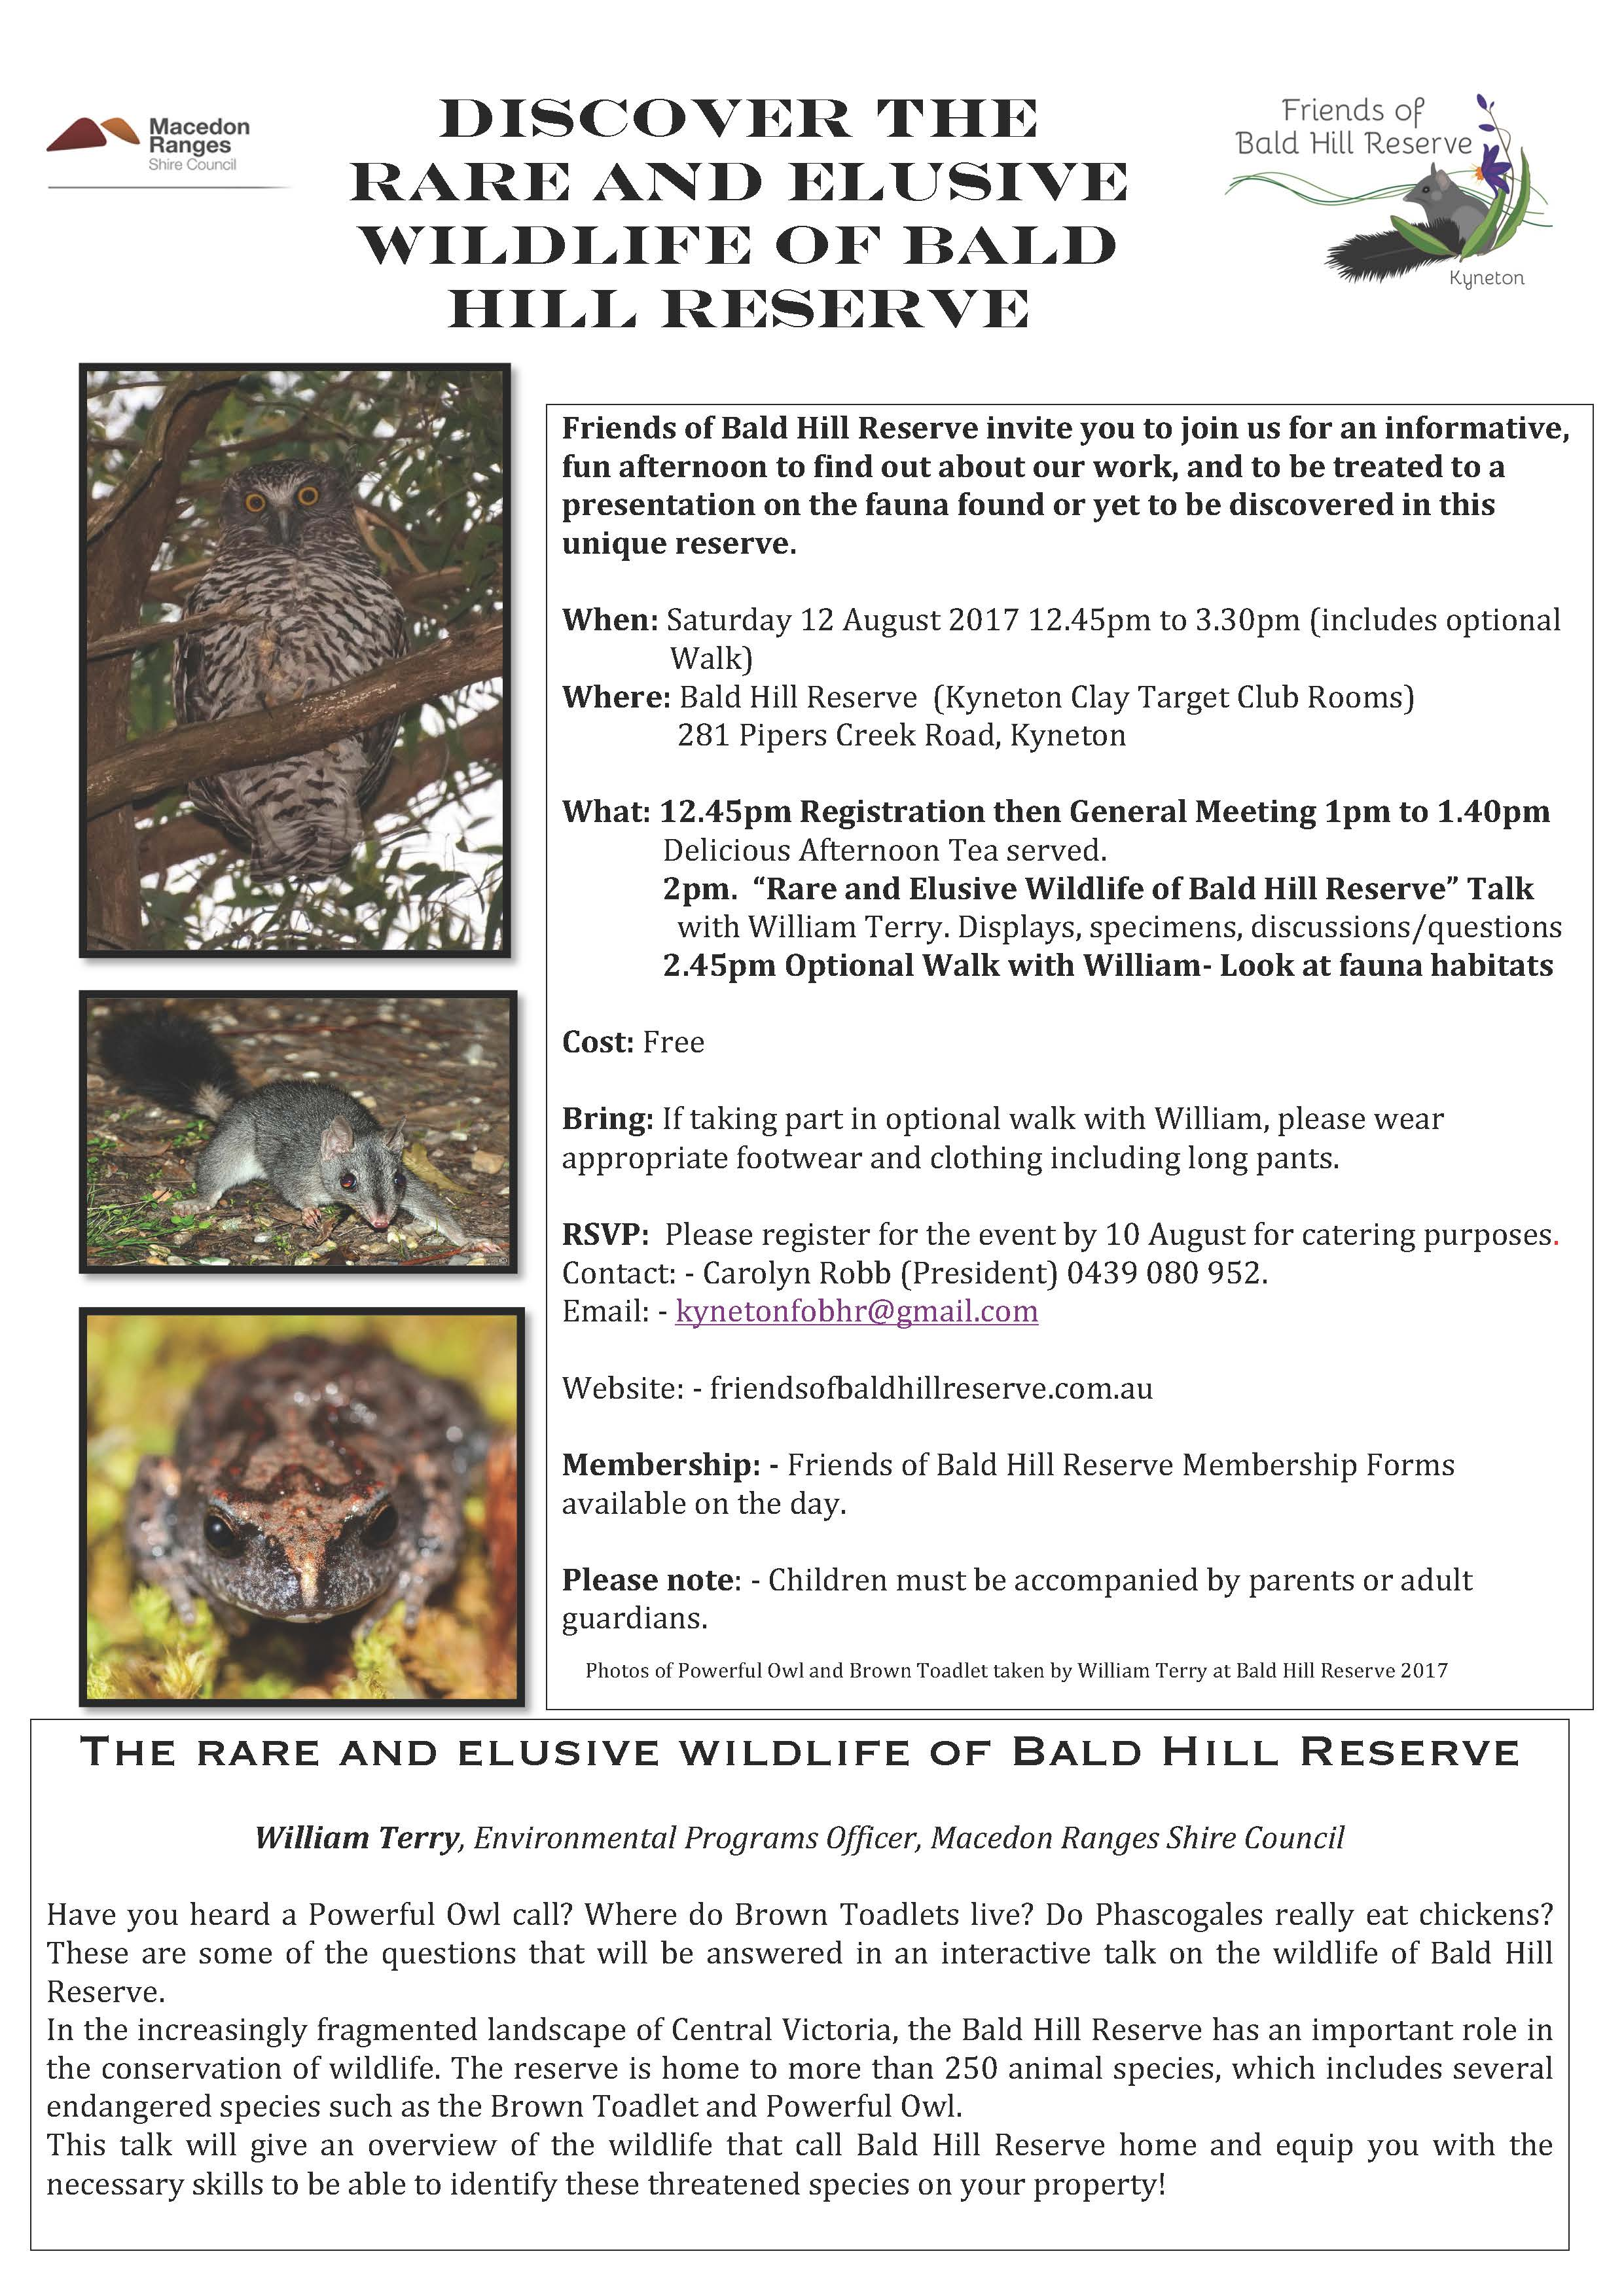 Discover the wildlife of BHR 12 August 2017.jpg